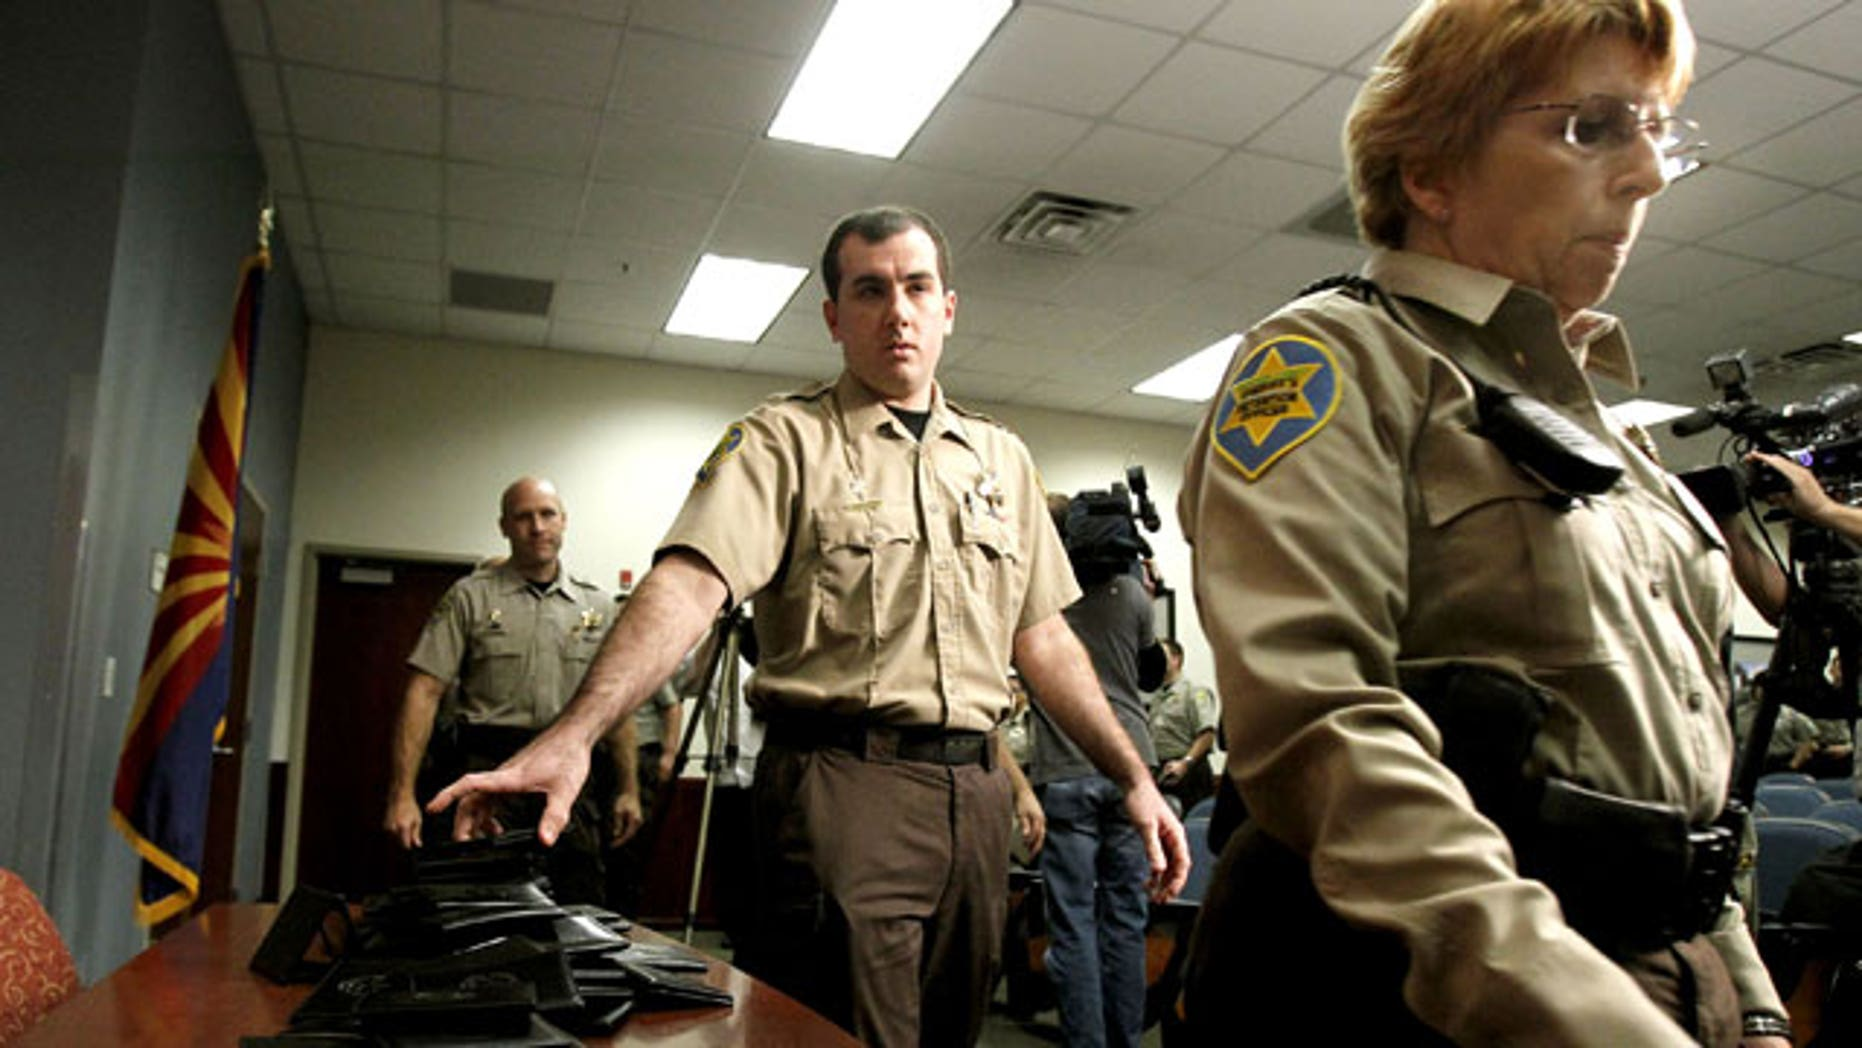 December 21, 2011: Maricopa County Sheriff's Office immigration jail officers turn in their credentials after federal officials pulled the Sheriff's office immigration enforcement powers.